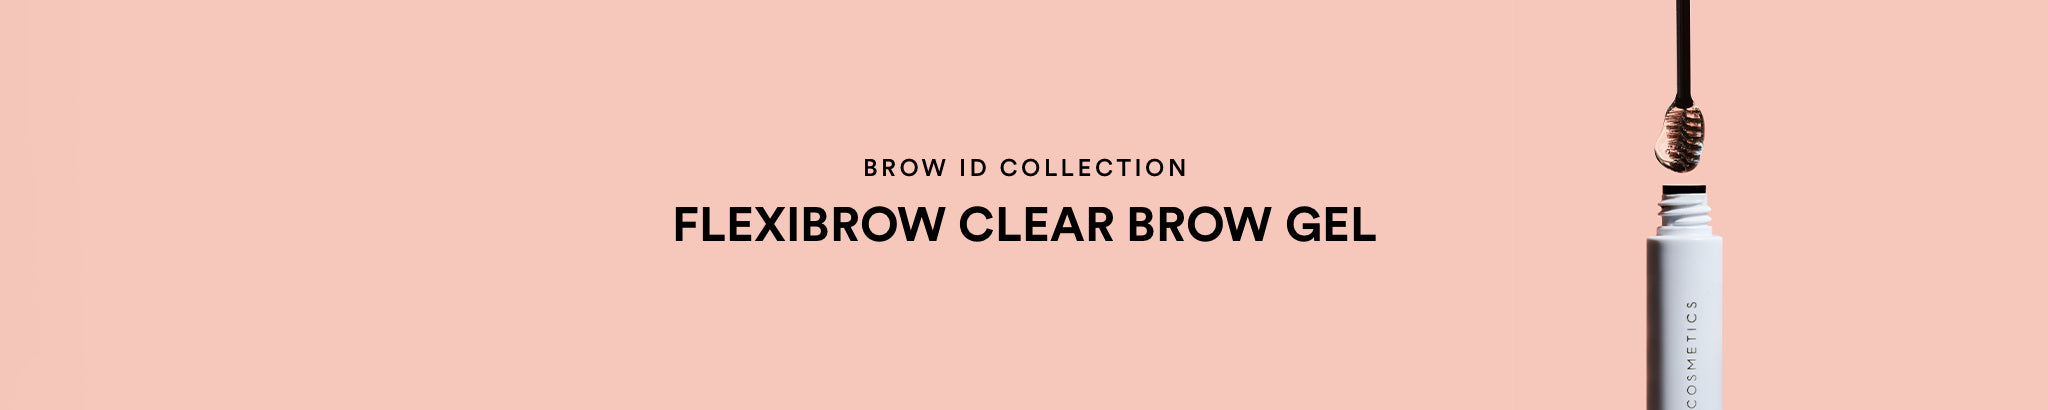 BROW ID COLLECTION